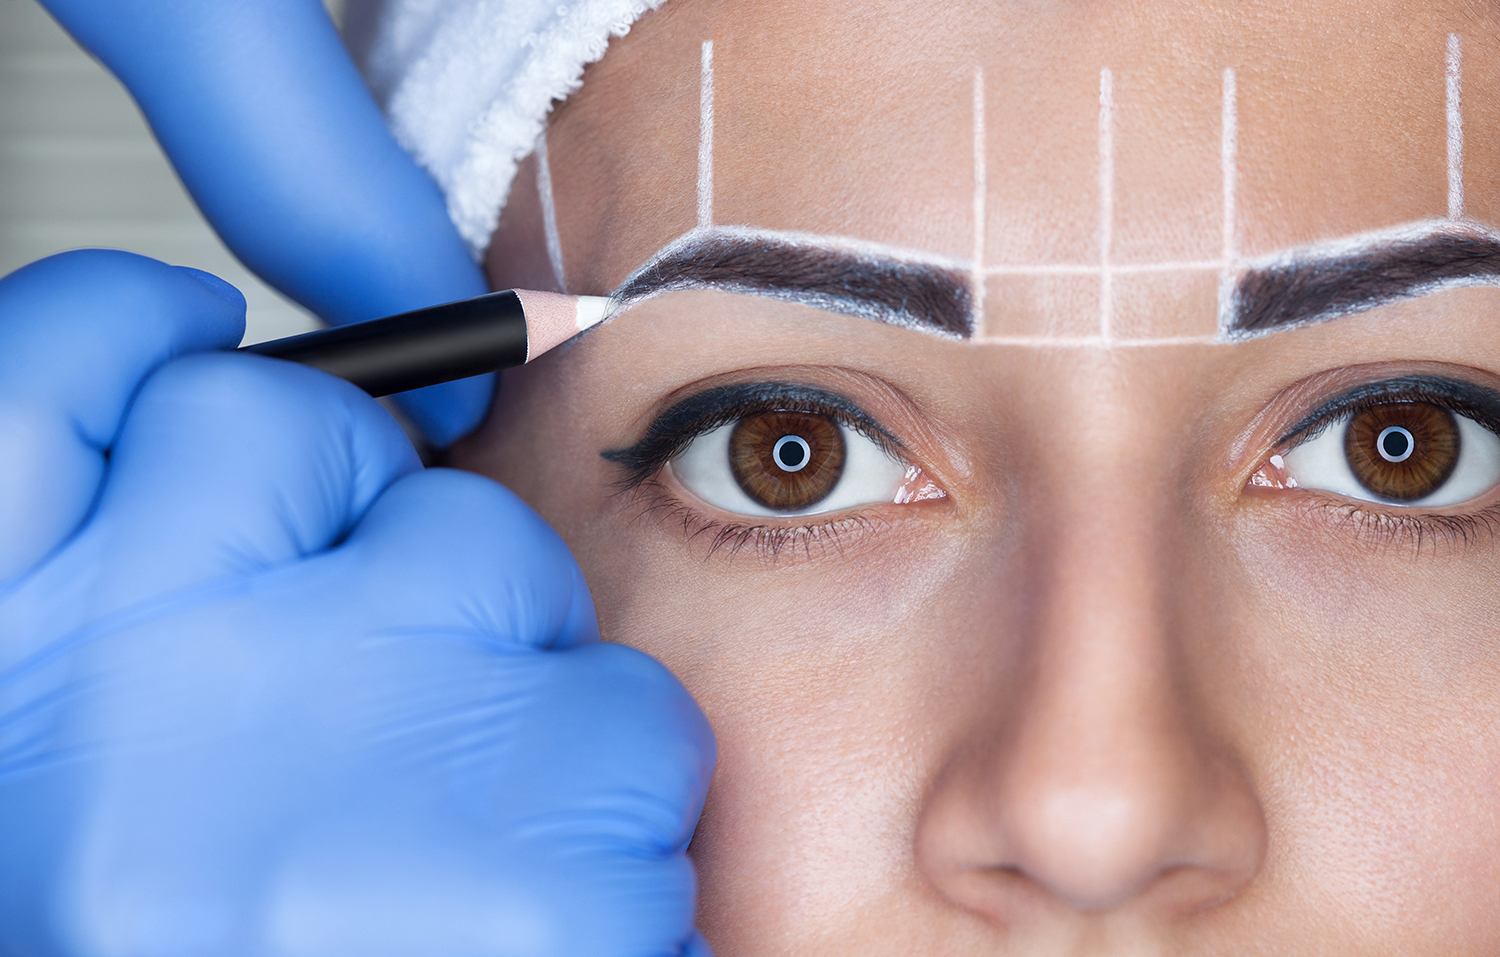 This Treatment Is Making Women Raise Their Eyebrows Permanently